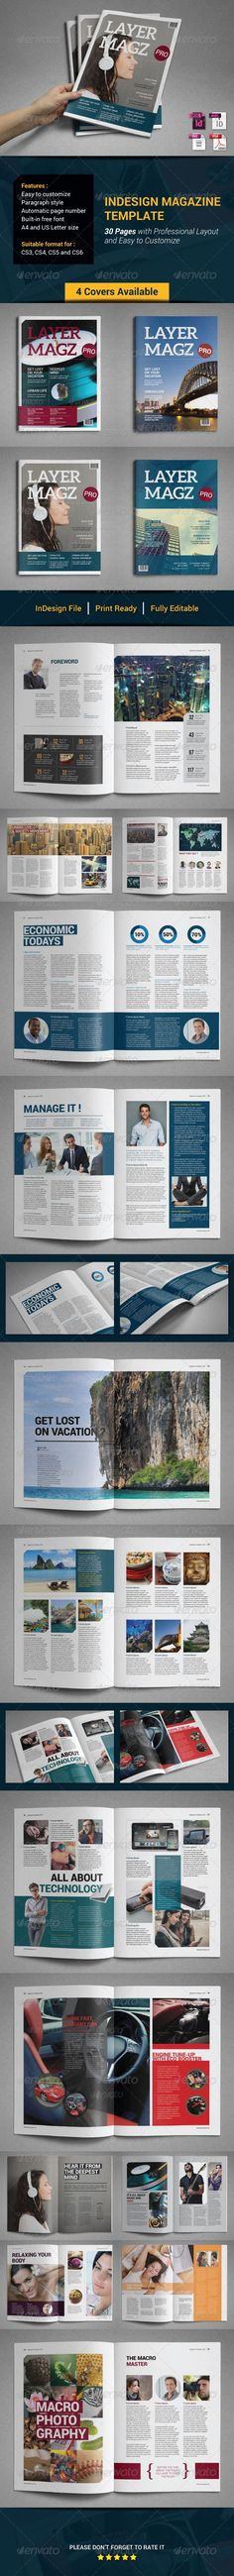 Indesign Magazine Template — InDesign INDD #print #page • Available here → https://graphicriver.net/item/indesign-magazine-template/7994726?ref=pxcr